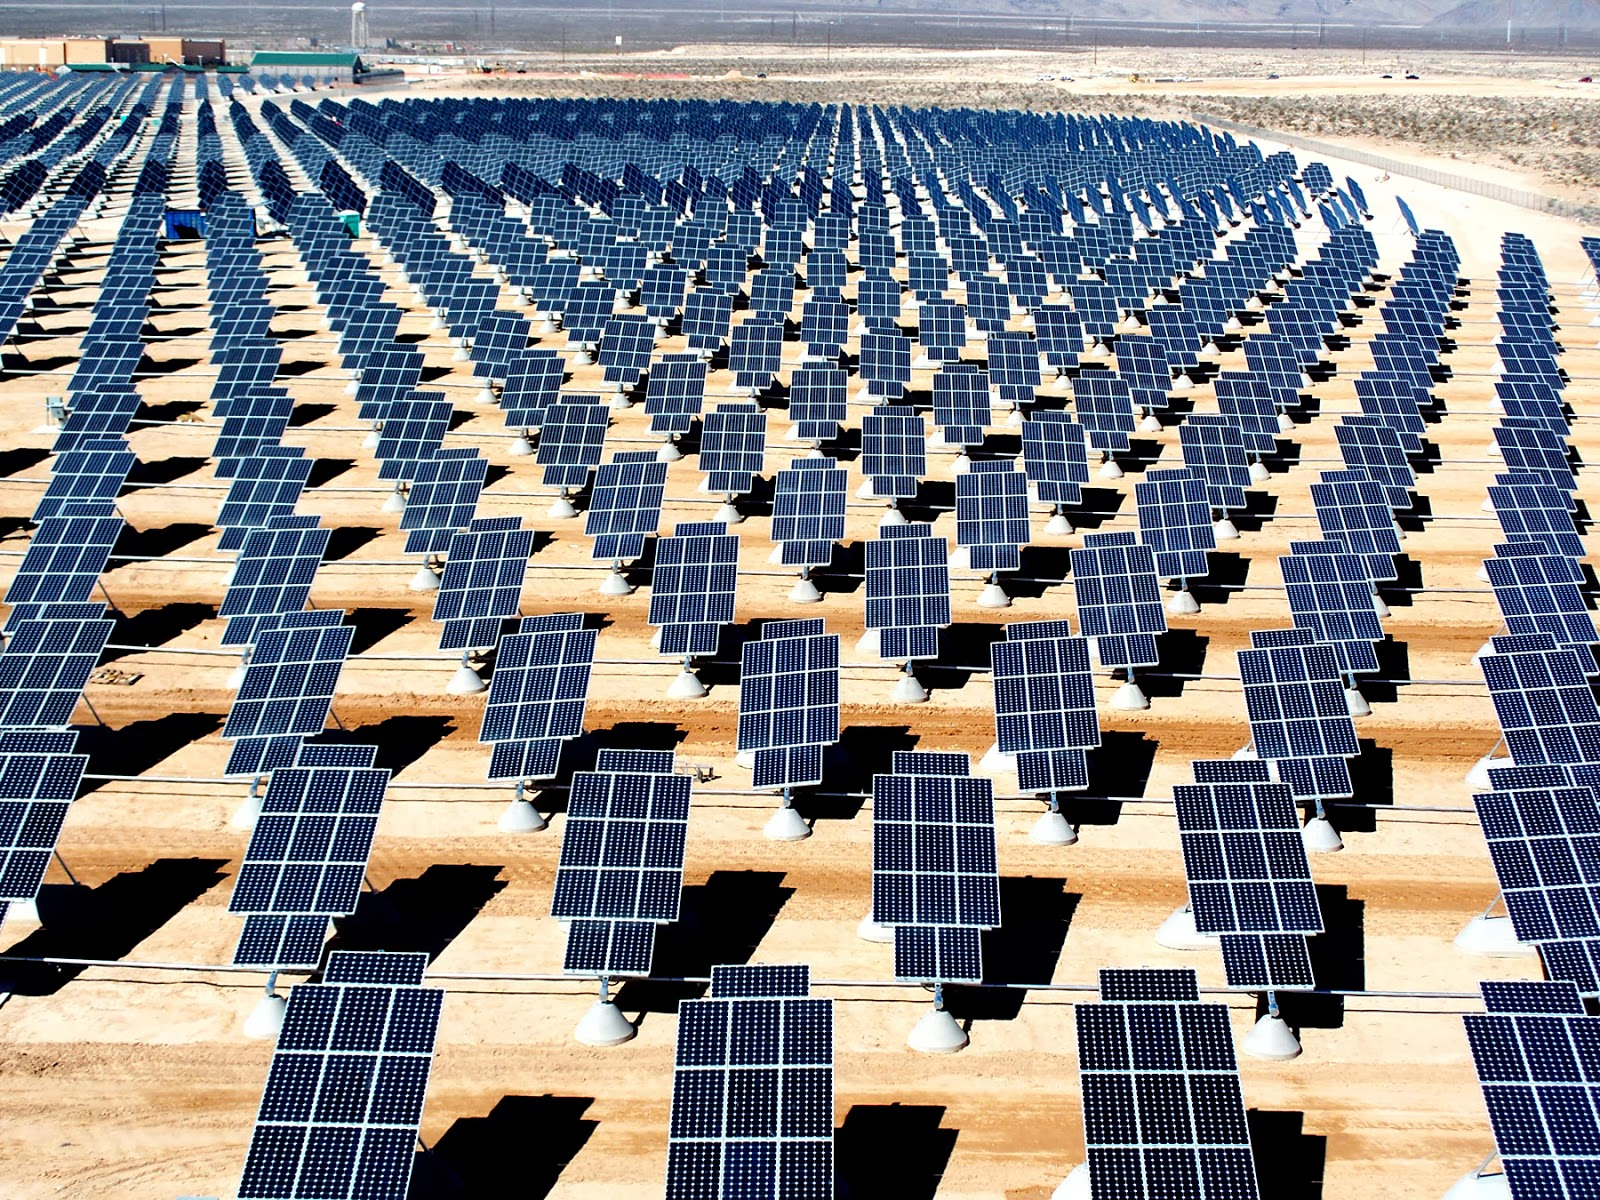 Europe has accounted for a large percentage of solar energy equipment  installations